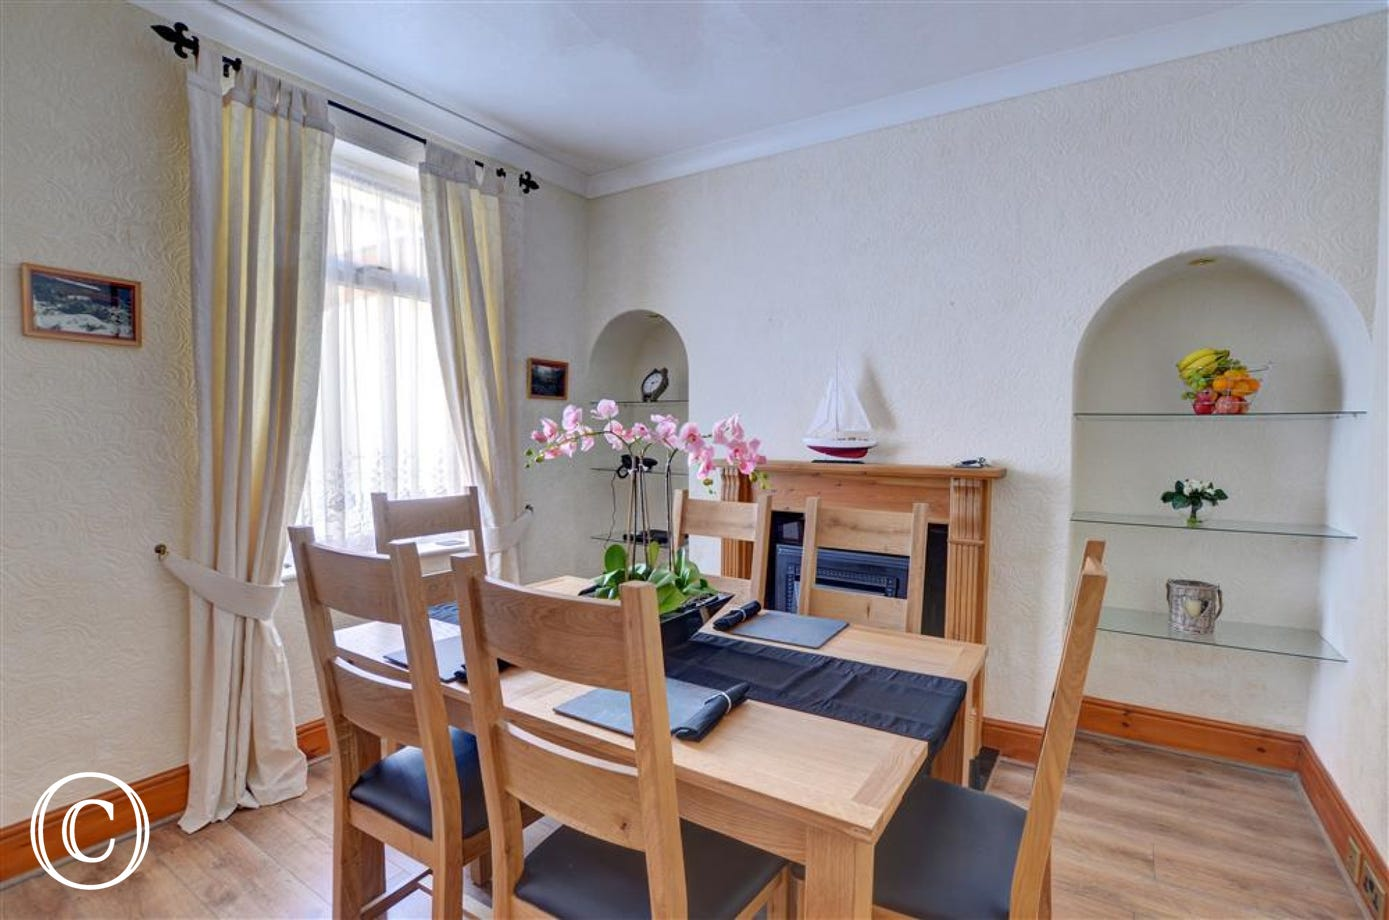 Spacious dining room with a dining table and chairs.